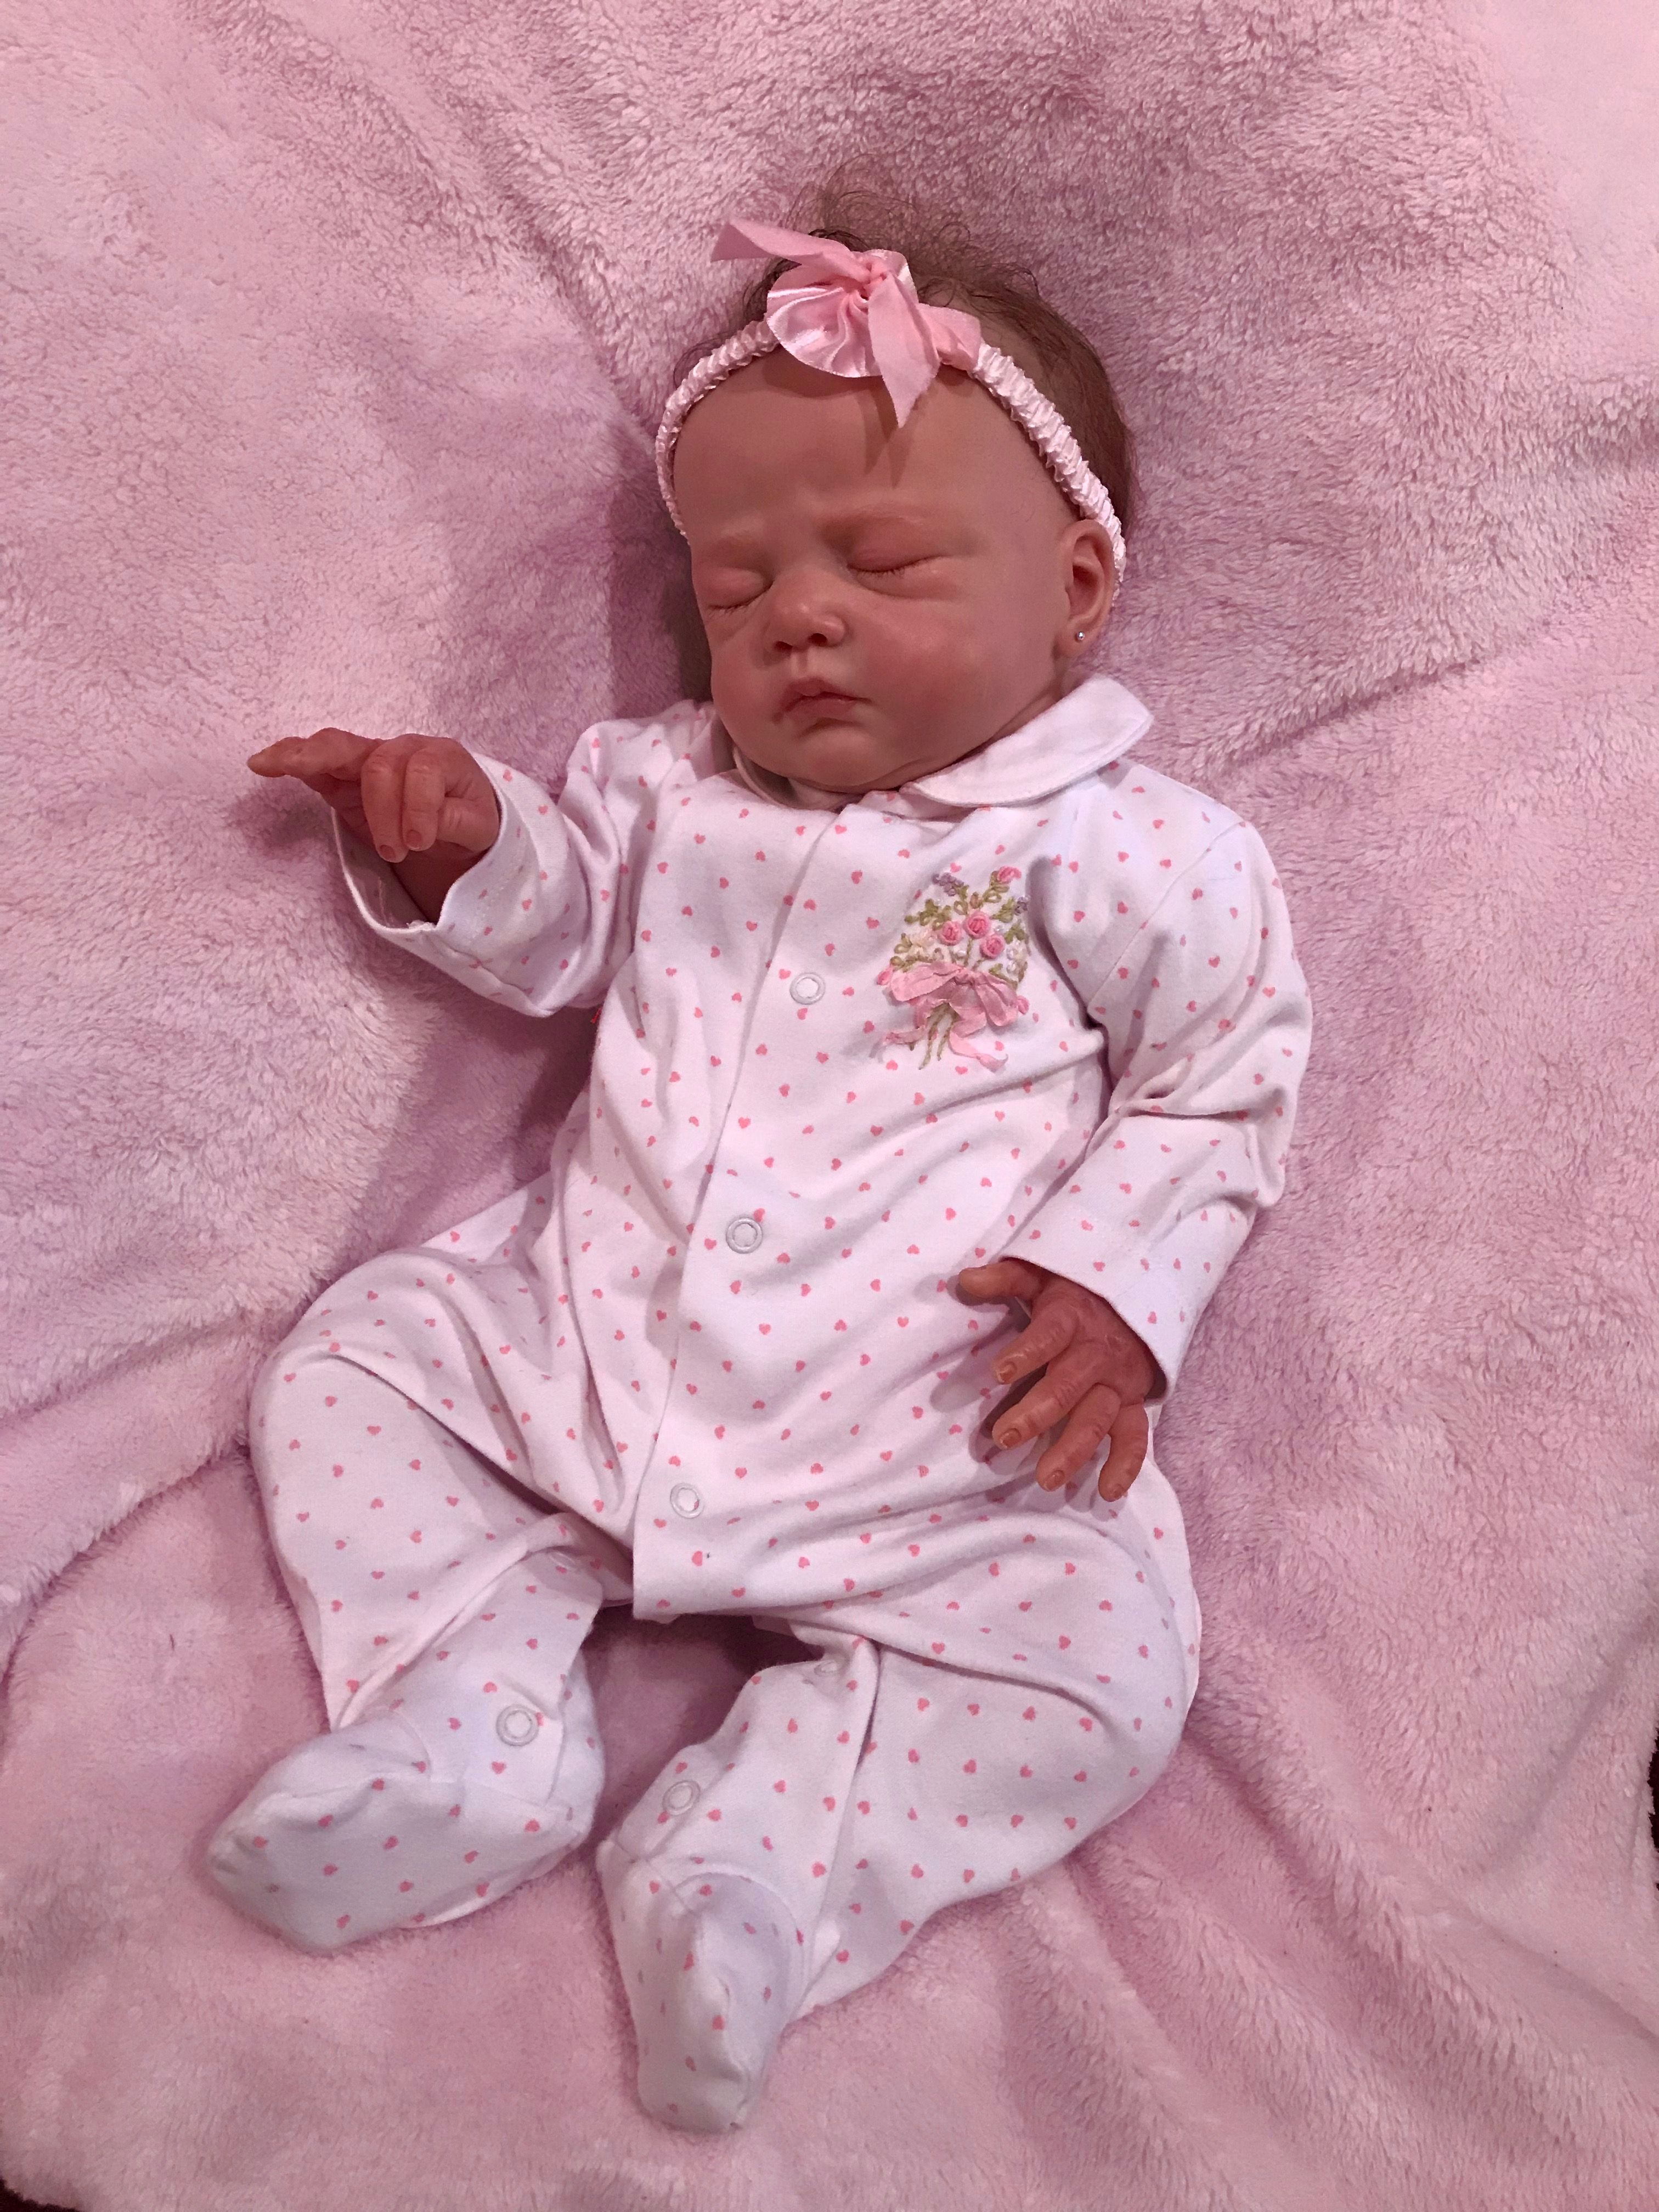 lillie beth, reborn baby doll, in an adorable sleepervictoria